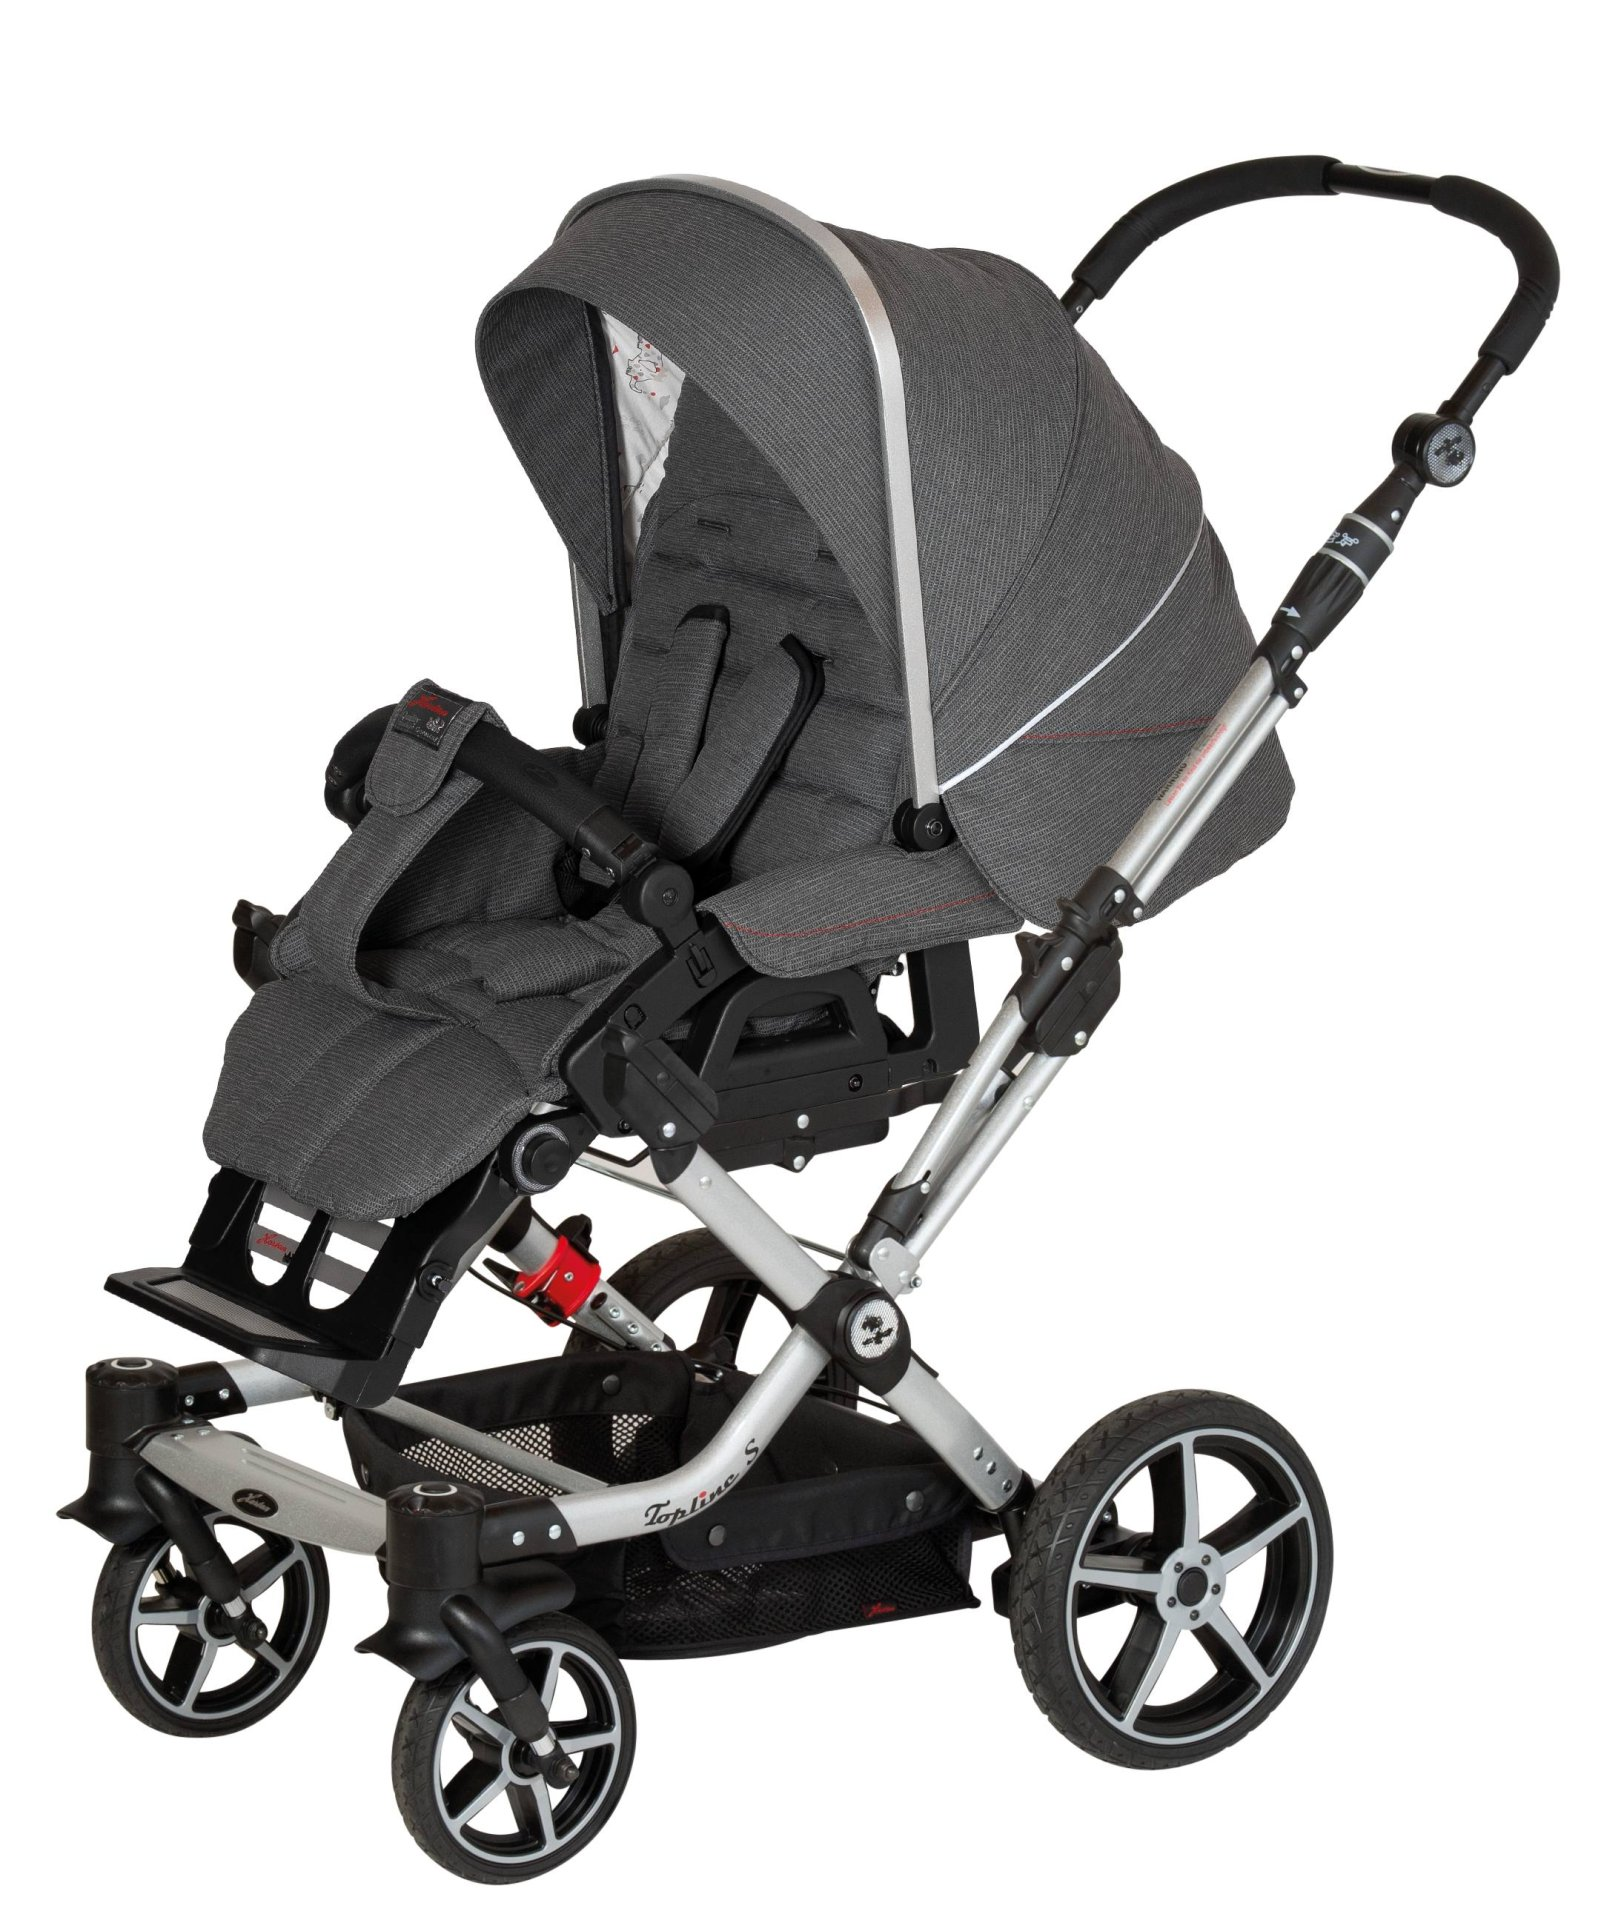 hartan stroller topline s 2019 624 elefant buy at. Black Bedroom Furniture Sets. Home Design Ideas